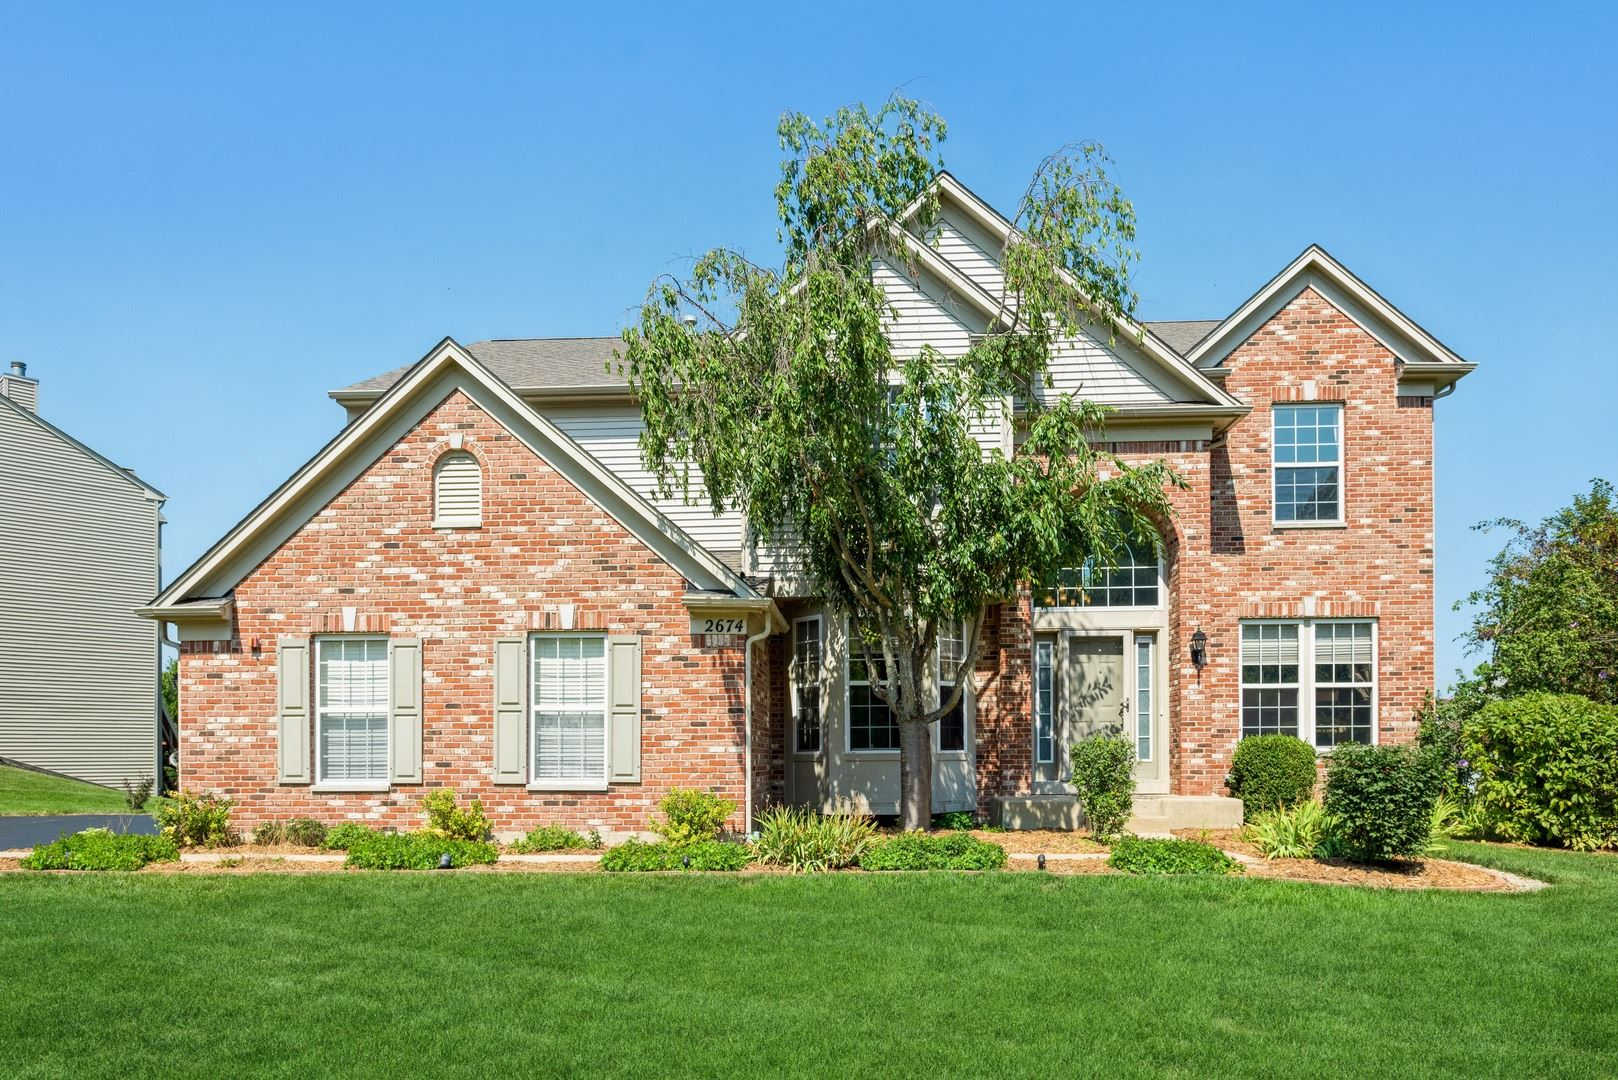 2674 Connolly Lane, West Dundee, IL 60118 - #: 11206150